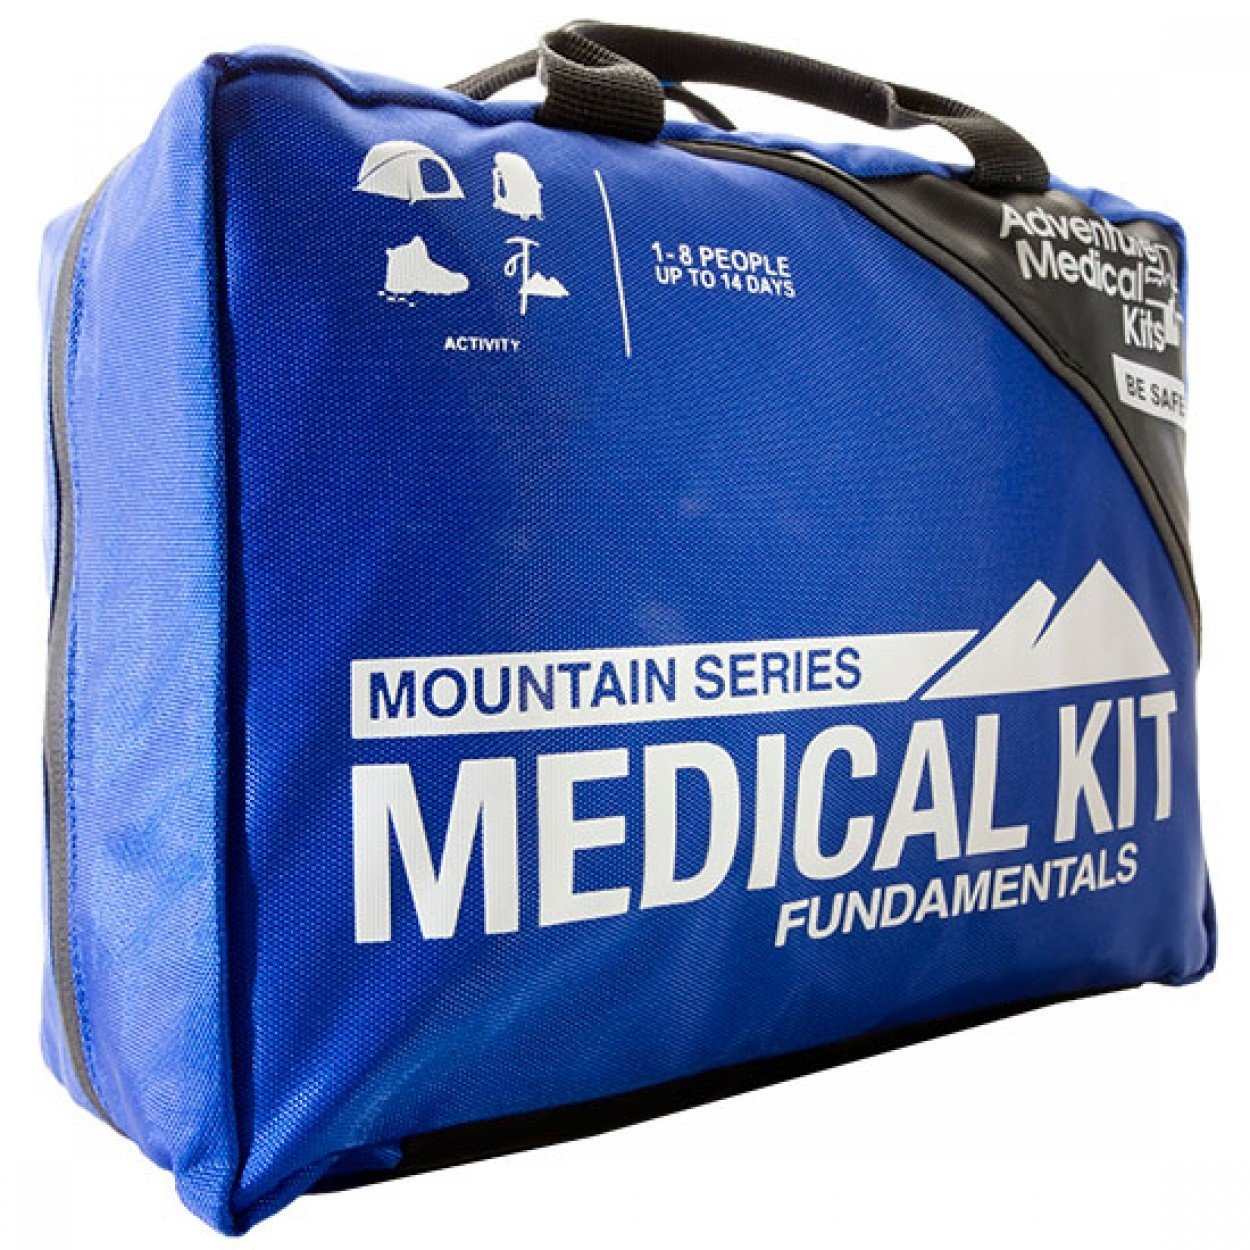 Adventure Medical Kit Mountain Series Fundamentals Medical Kit